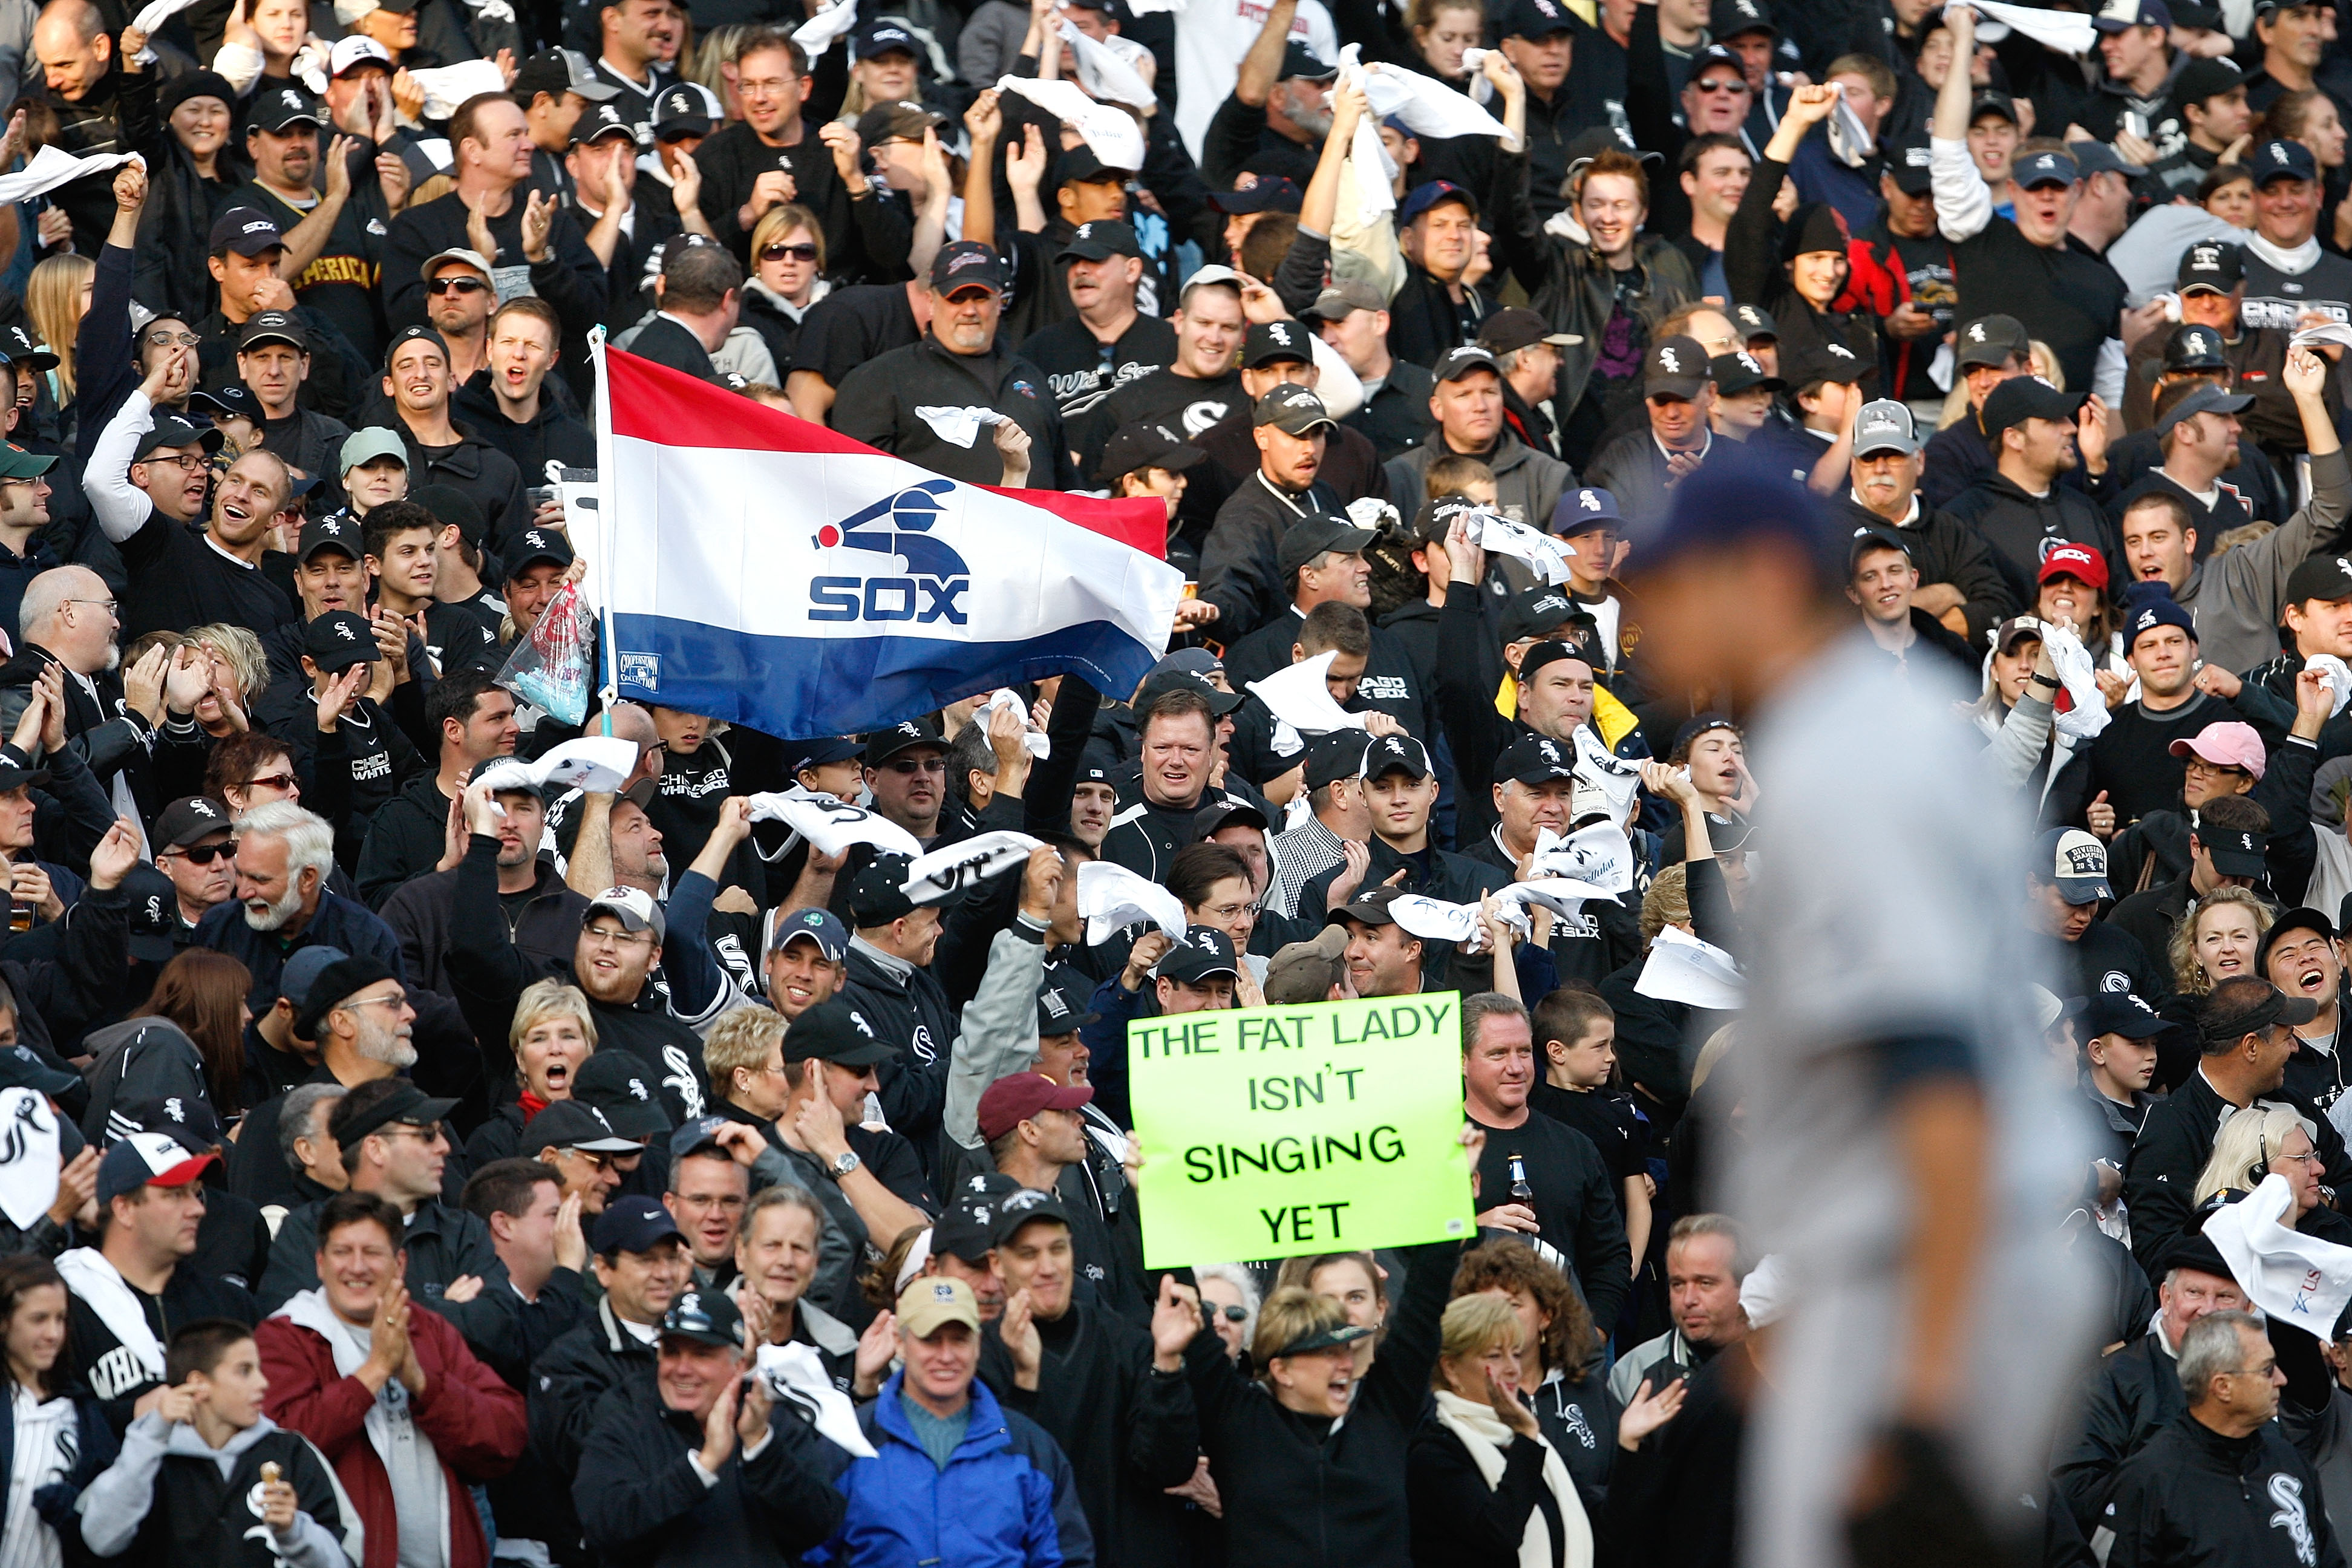 CHICAGO - OCTOBER 05:  Fans of the Chicago White Sox support their team as starting pitcher Matt Garza #22 (foreground) of  the Tampa Bay Rays stands on the mound in Game Three of the ALDS during the 2008 MLB Playoffs at U.S. Cellular Field on October 5,